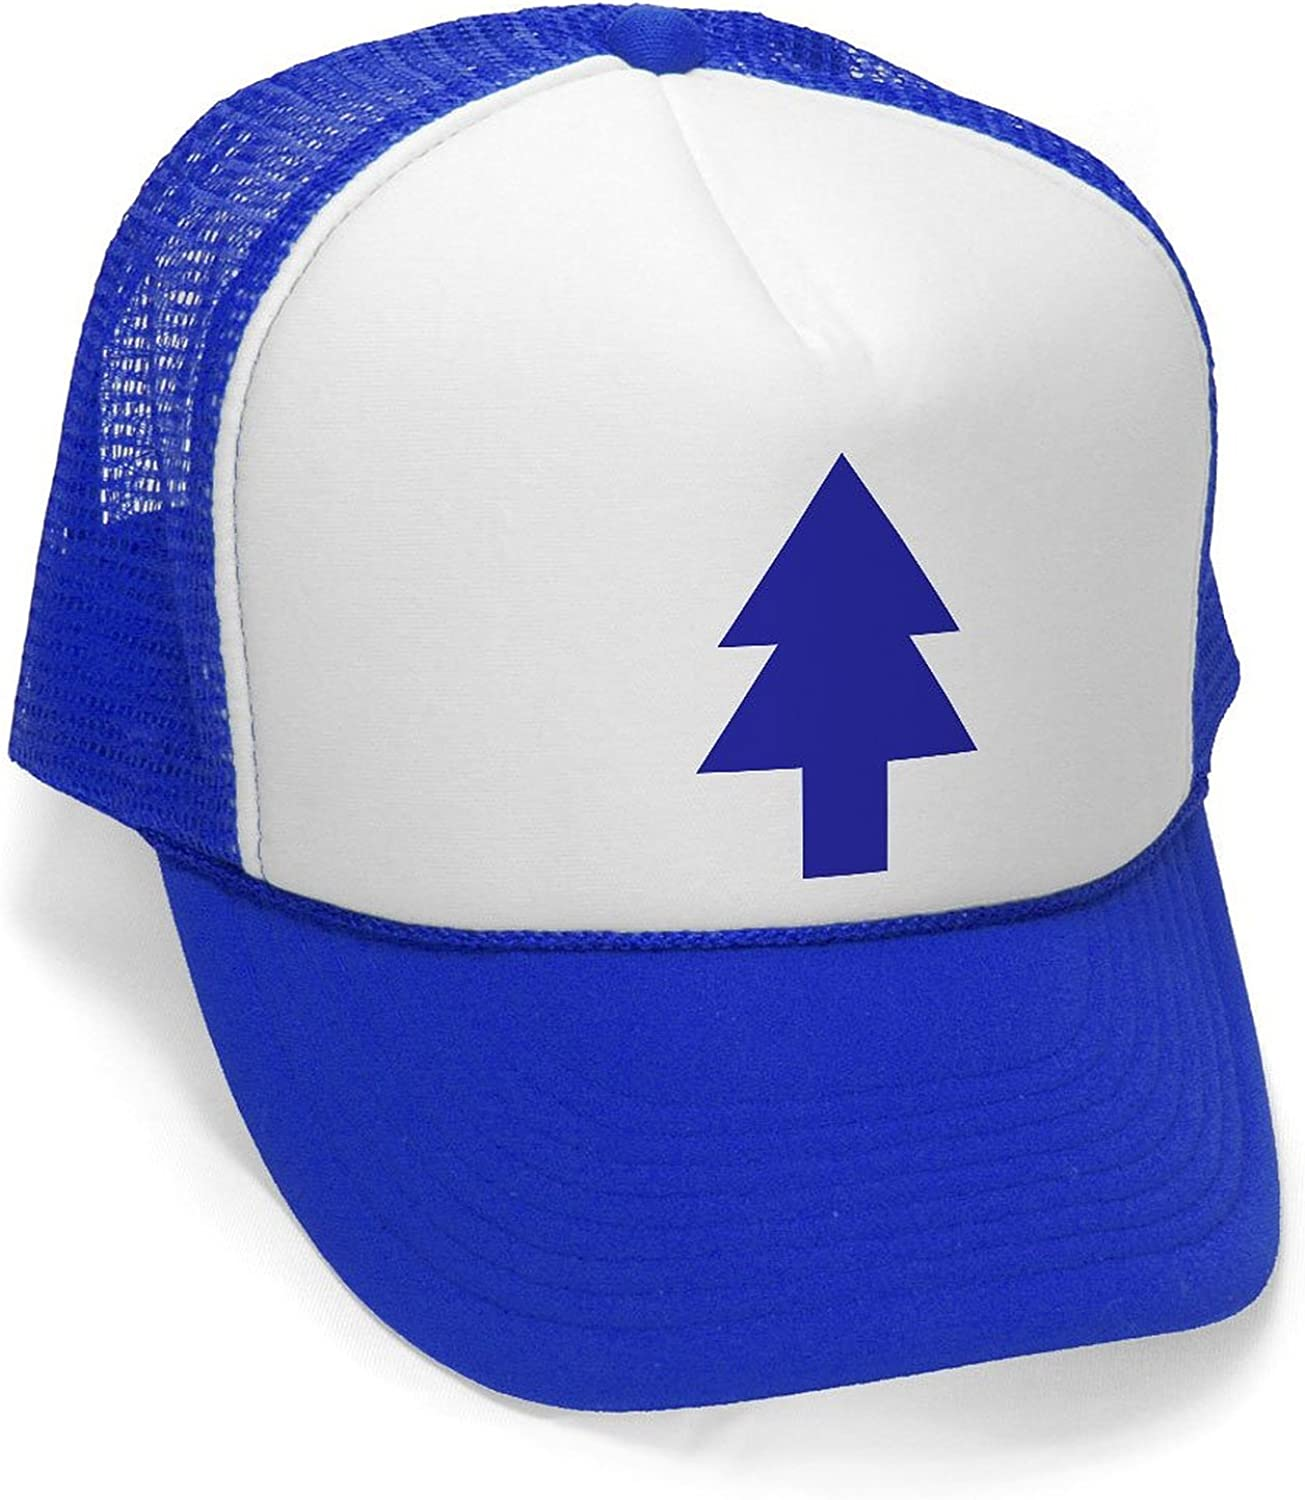 Dipper's Pines - Foam and Mesh Trucker Hat Royal Blue: Clothing